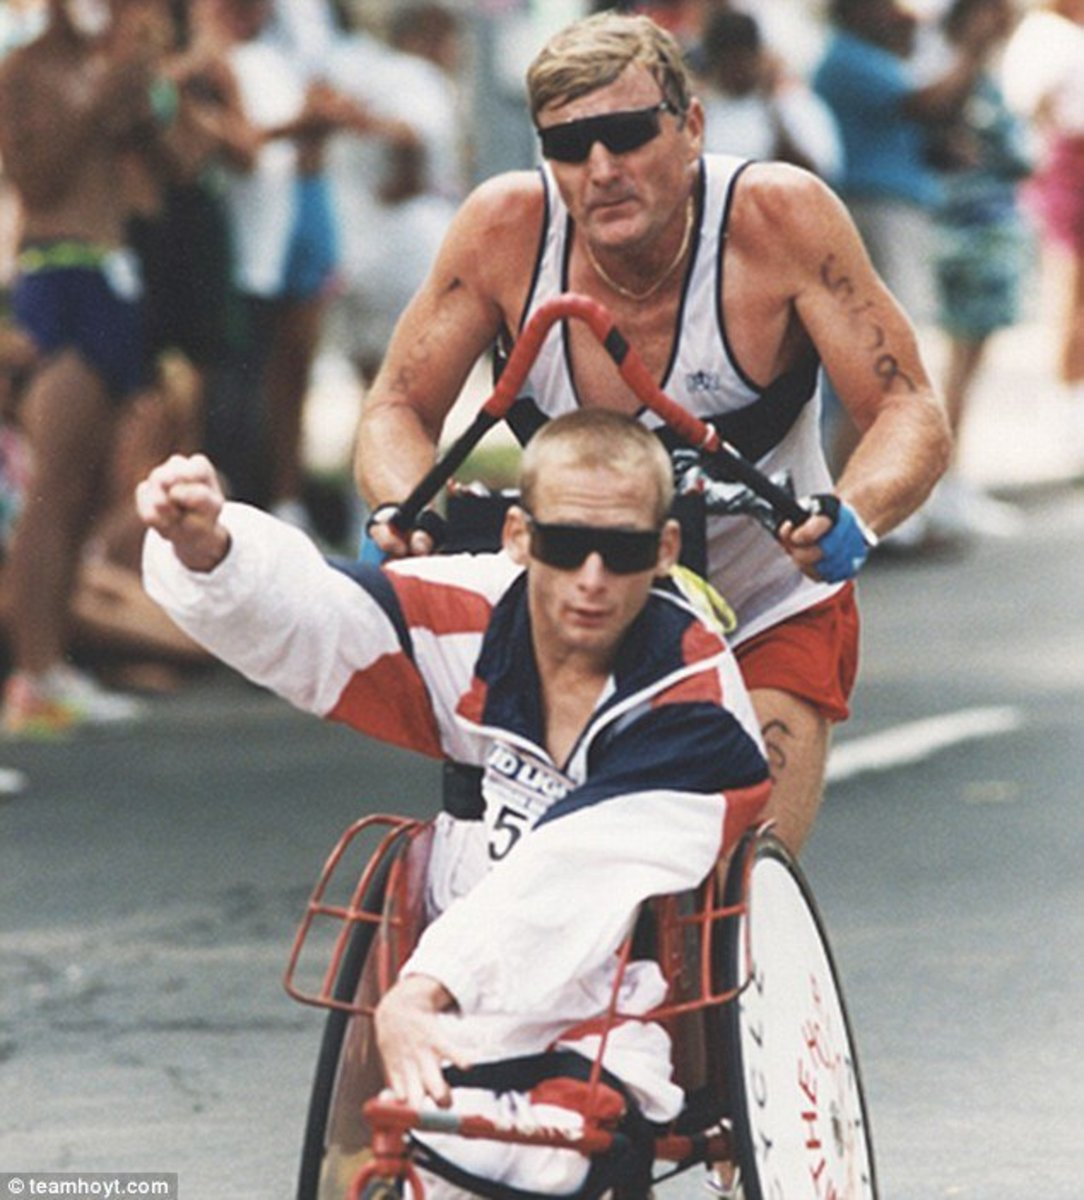 A Father's Special Dedication: The Racing World of Dick and Rick Hoyt